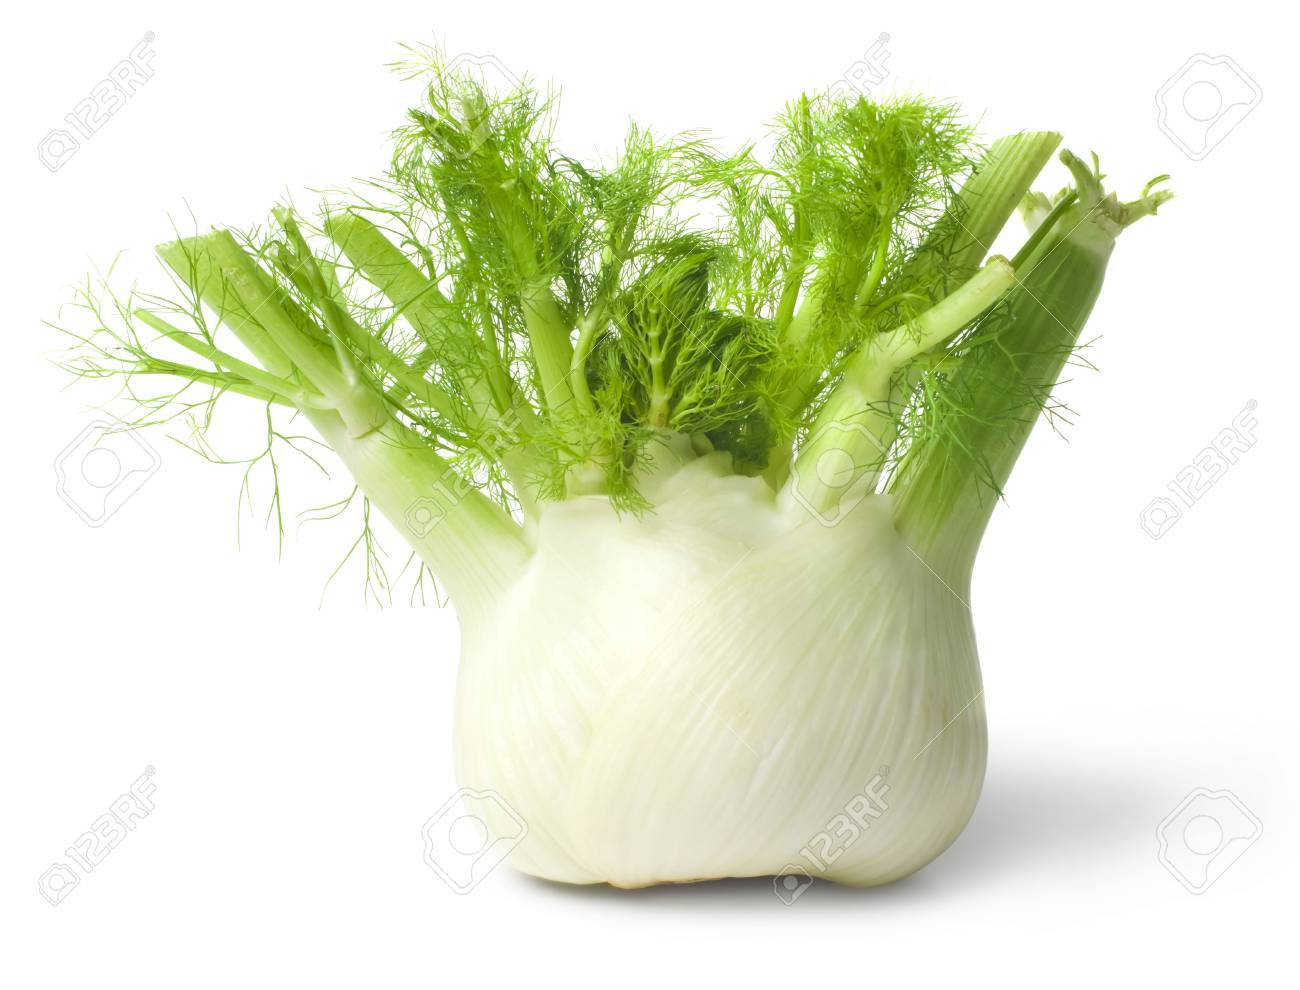 Fennel isolated on white background - 16221122